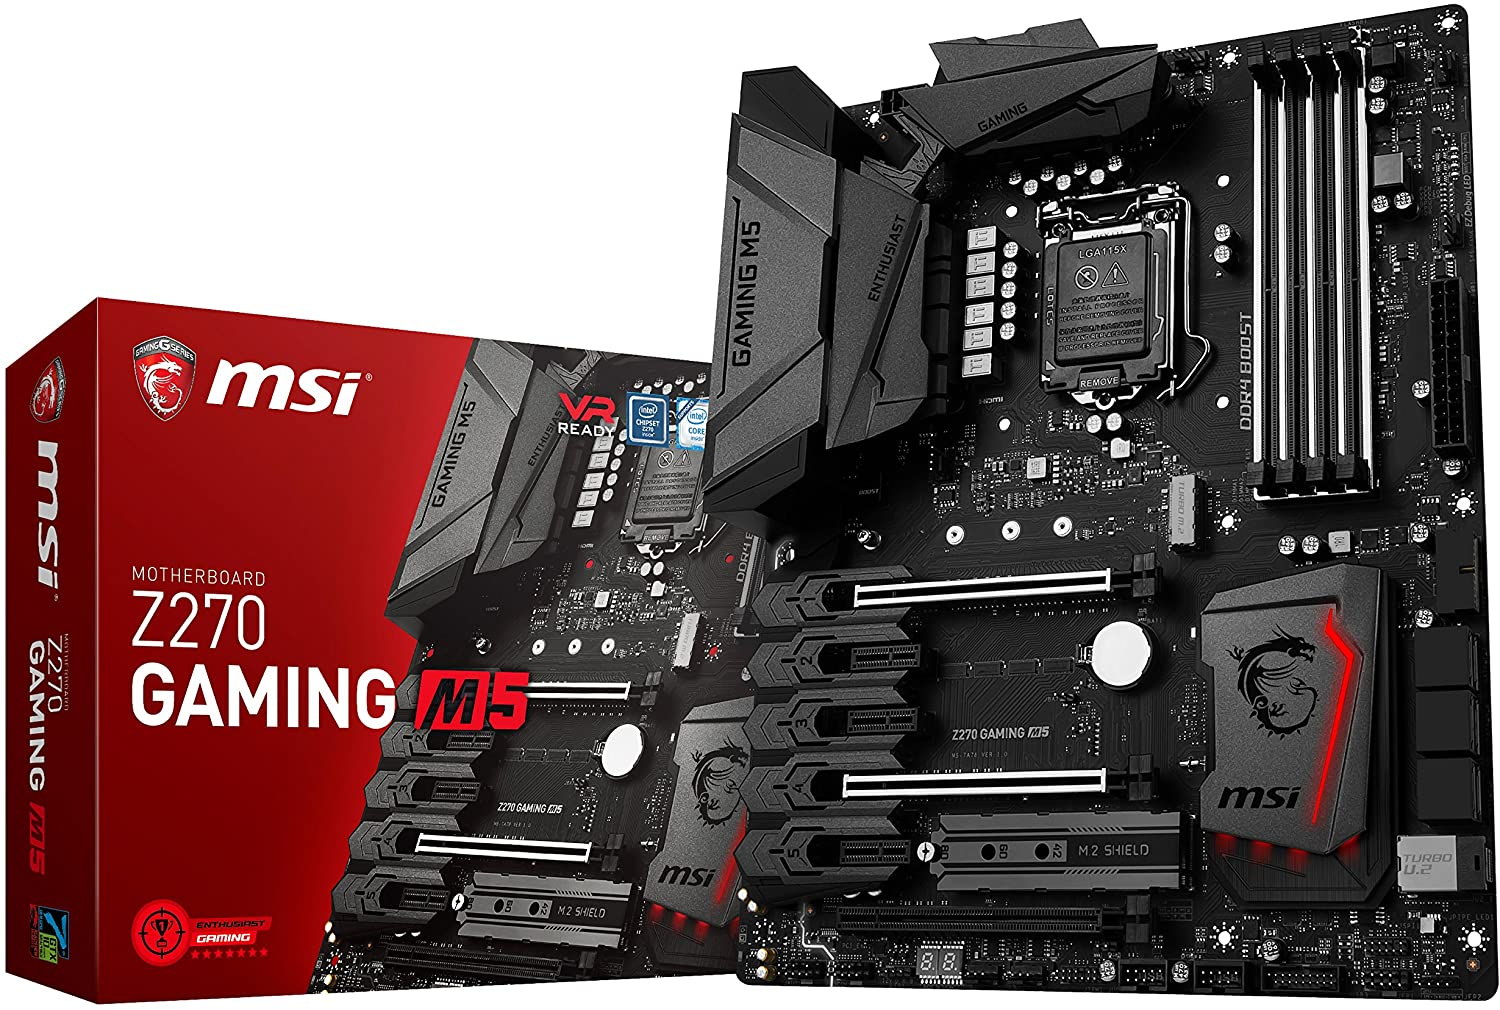 msi enthusiastic gaming intel z270 ddr4 vr ready hdmi usb 3 atx motherboard z270 gaming m5 - msi-enthusiastic-gaming-intel-z270-ddr4-vr-ready-hdmi-usb-3-atx-motherboard-z270-gaming-m5